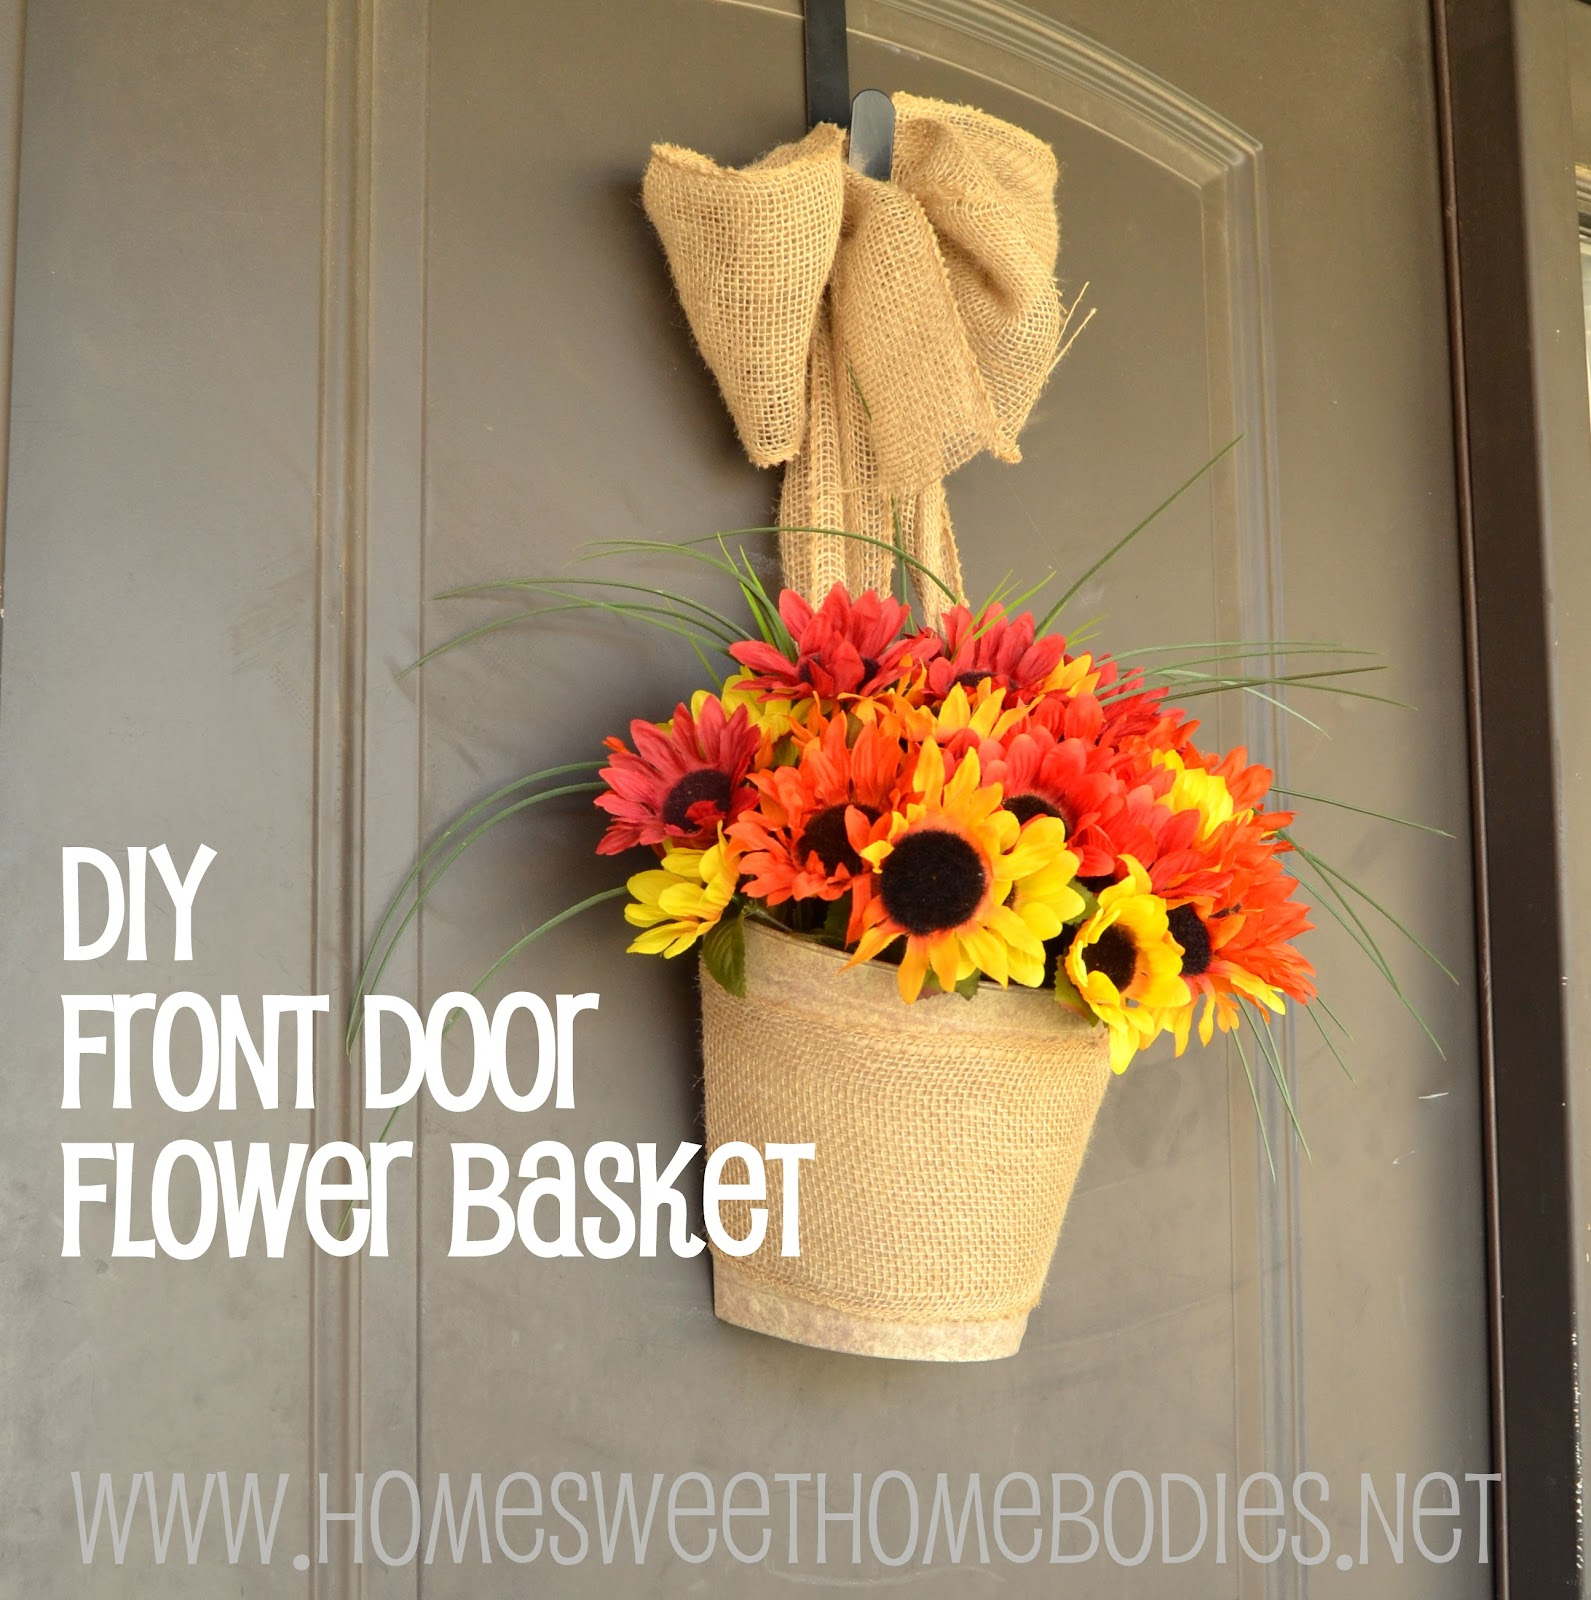 DIY Front Door Flower Basket